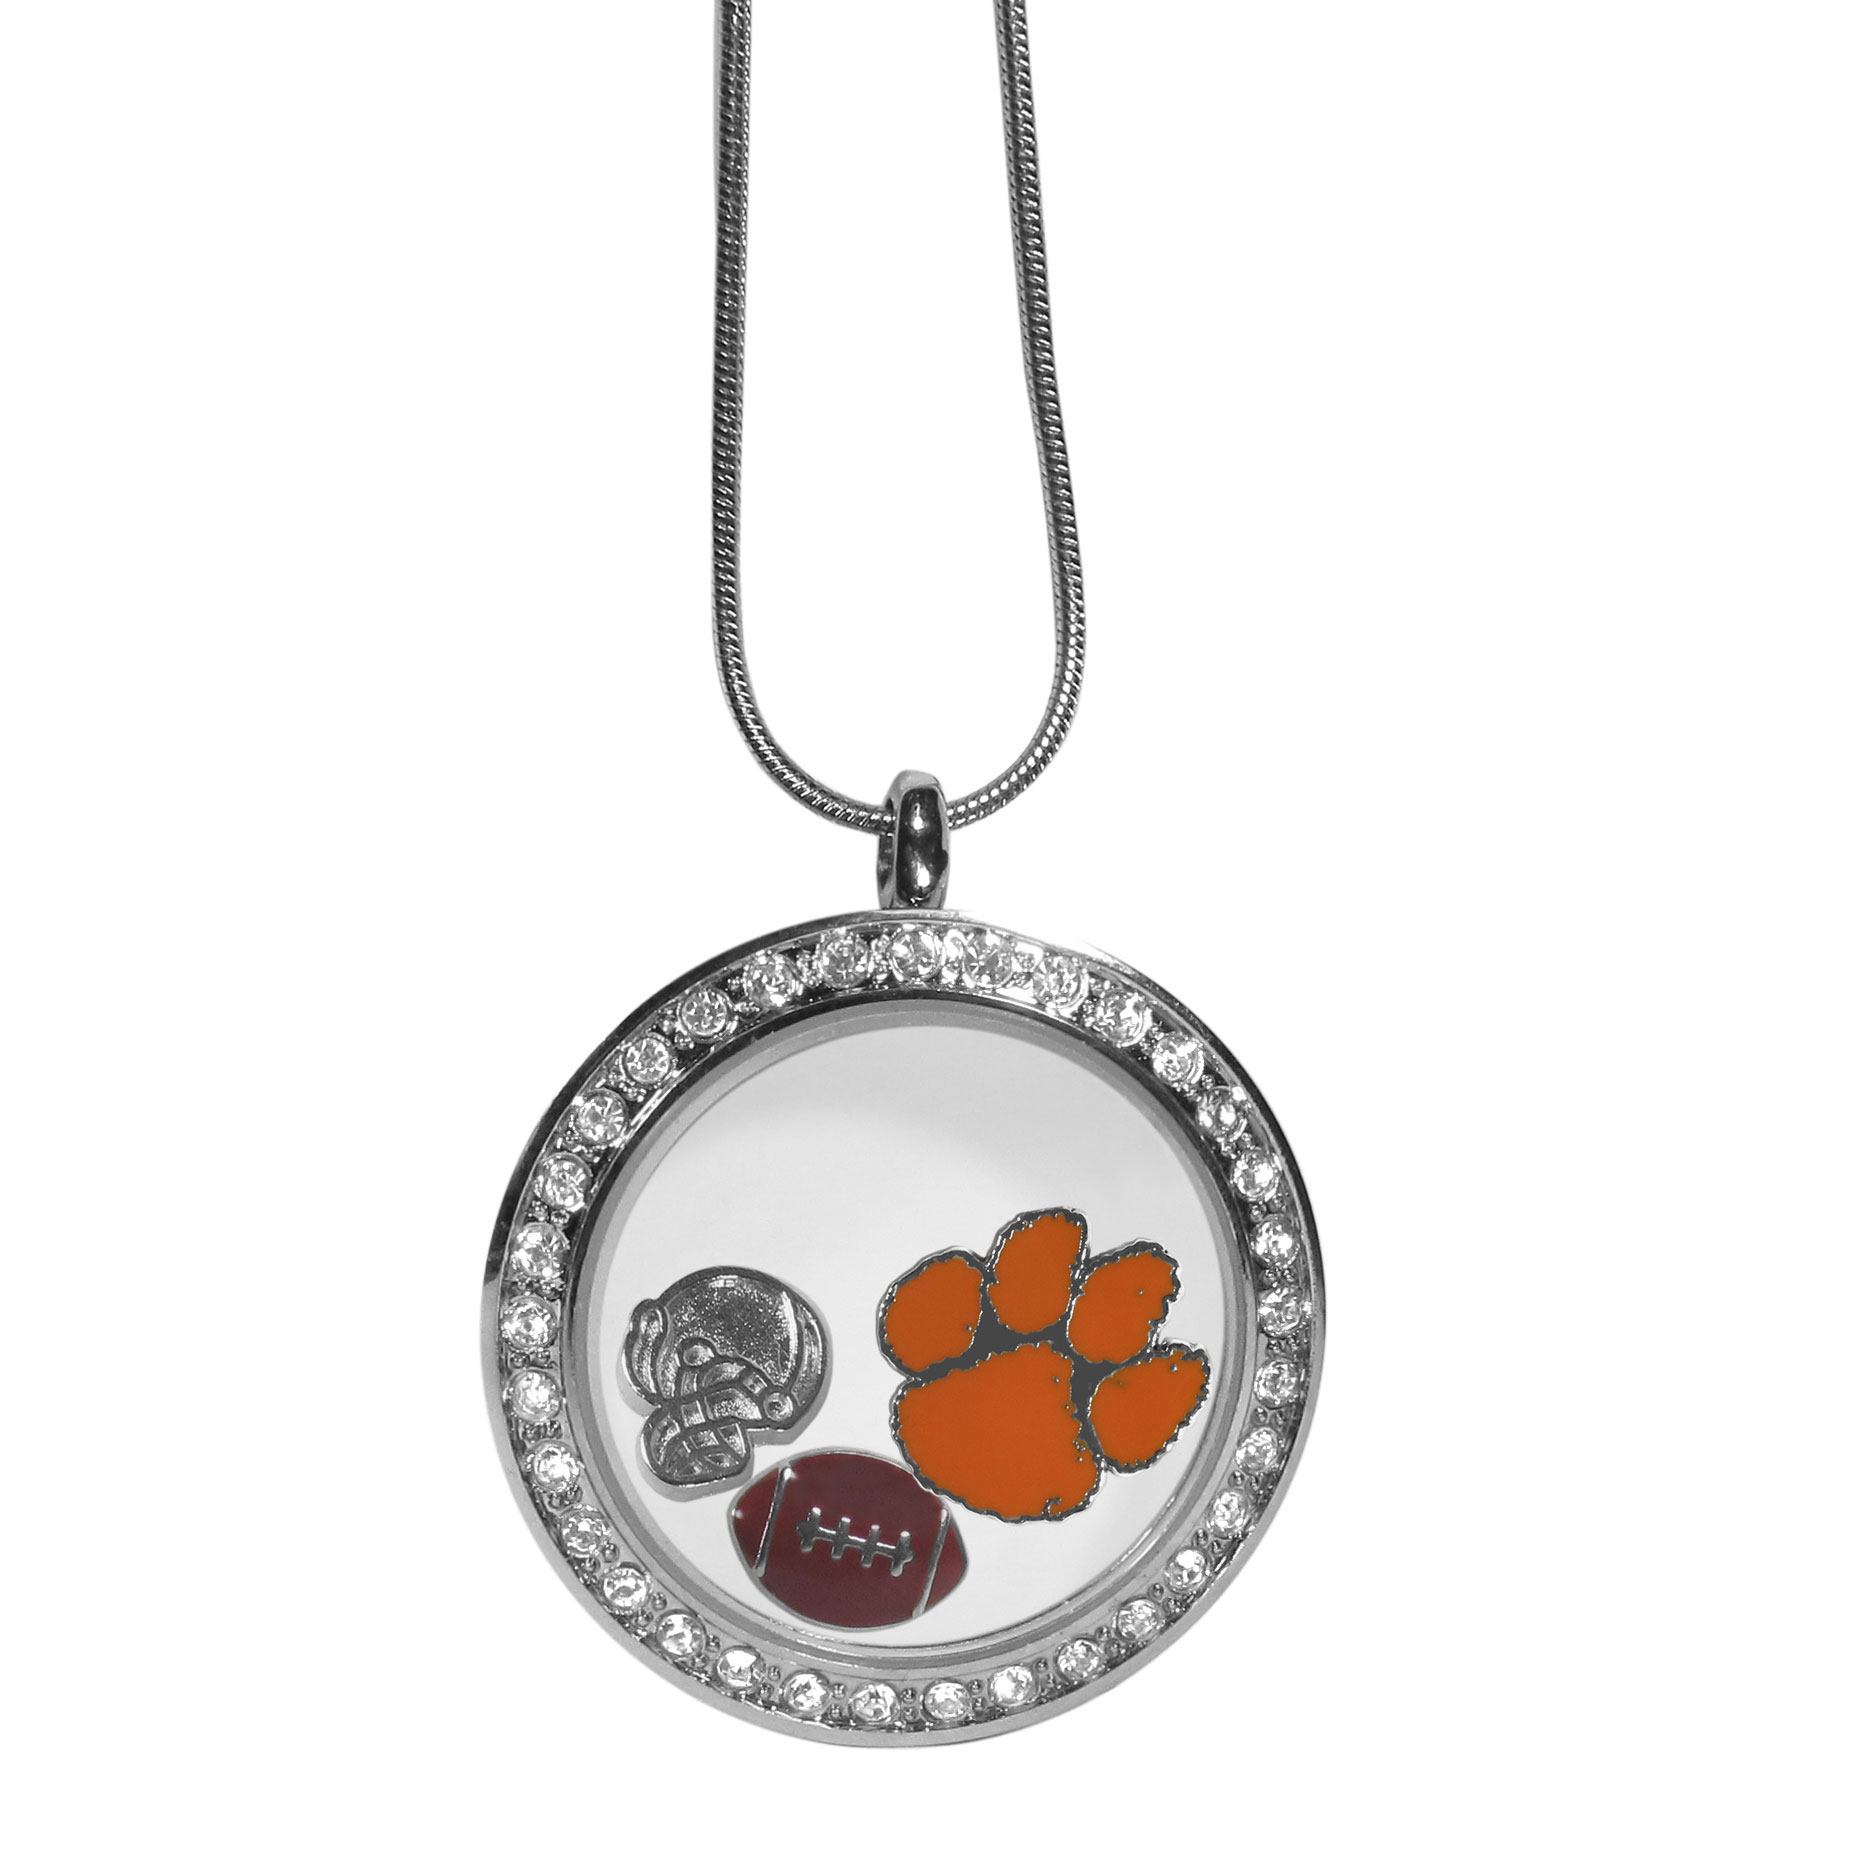 Clemson Tigers Locket Necklace - We have taken the classic floating charm locket and combined with licensed sports charms to create a must have fan necklace. The necklace comes with 3 charms; 1 Clemson Tigers charm, one football charm and one helmet charm. The charms float in a beautiful locket that has a strong magnetic closure with a rhinestone border. The locket comes on an 18 inch snake chain with 2 inch extender.